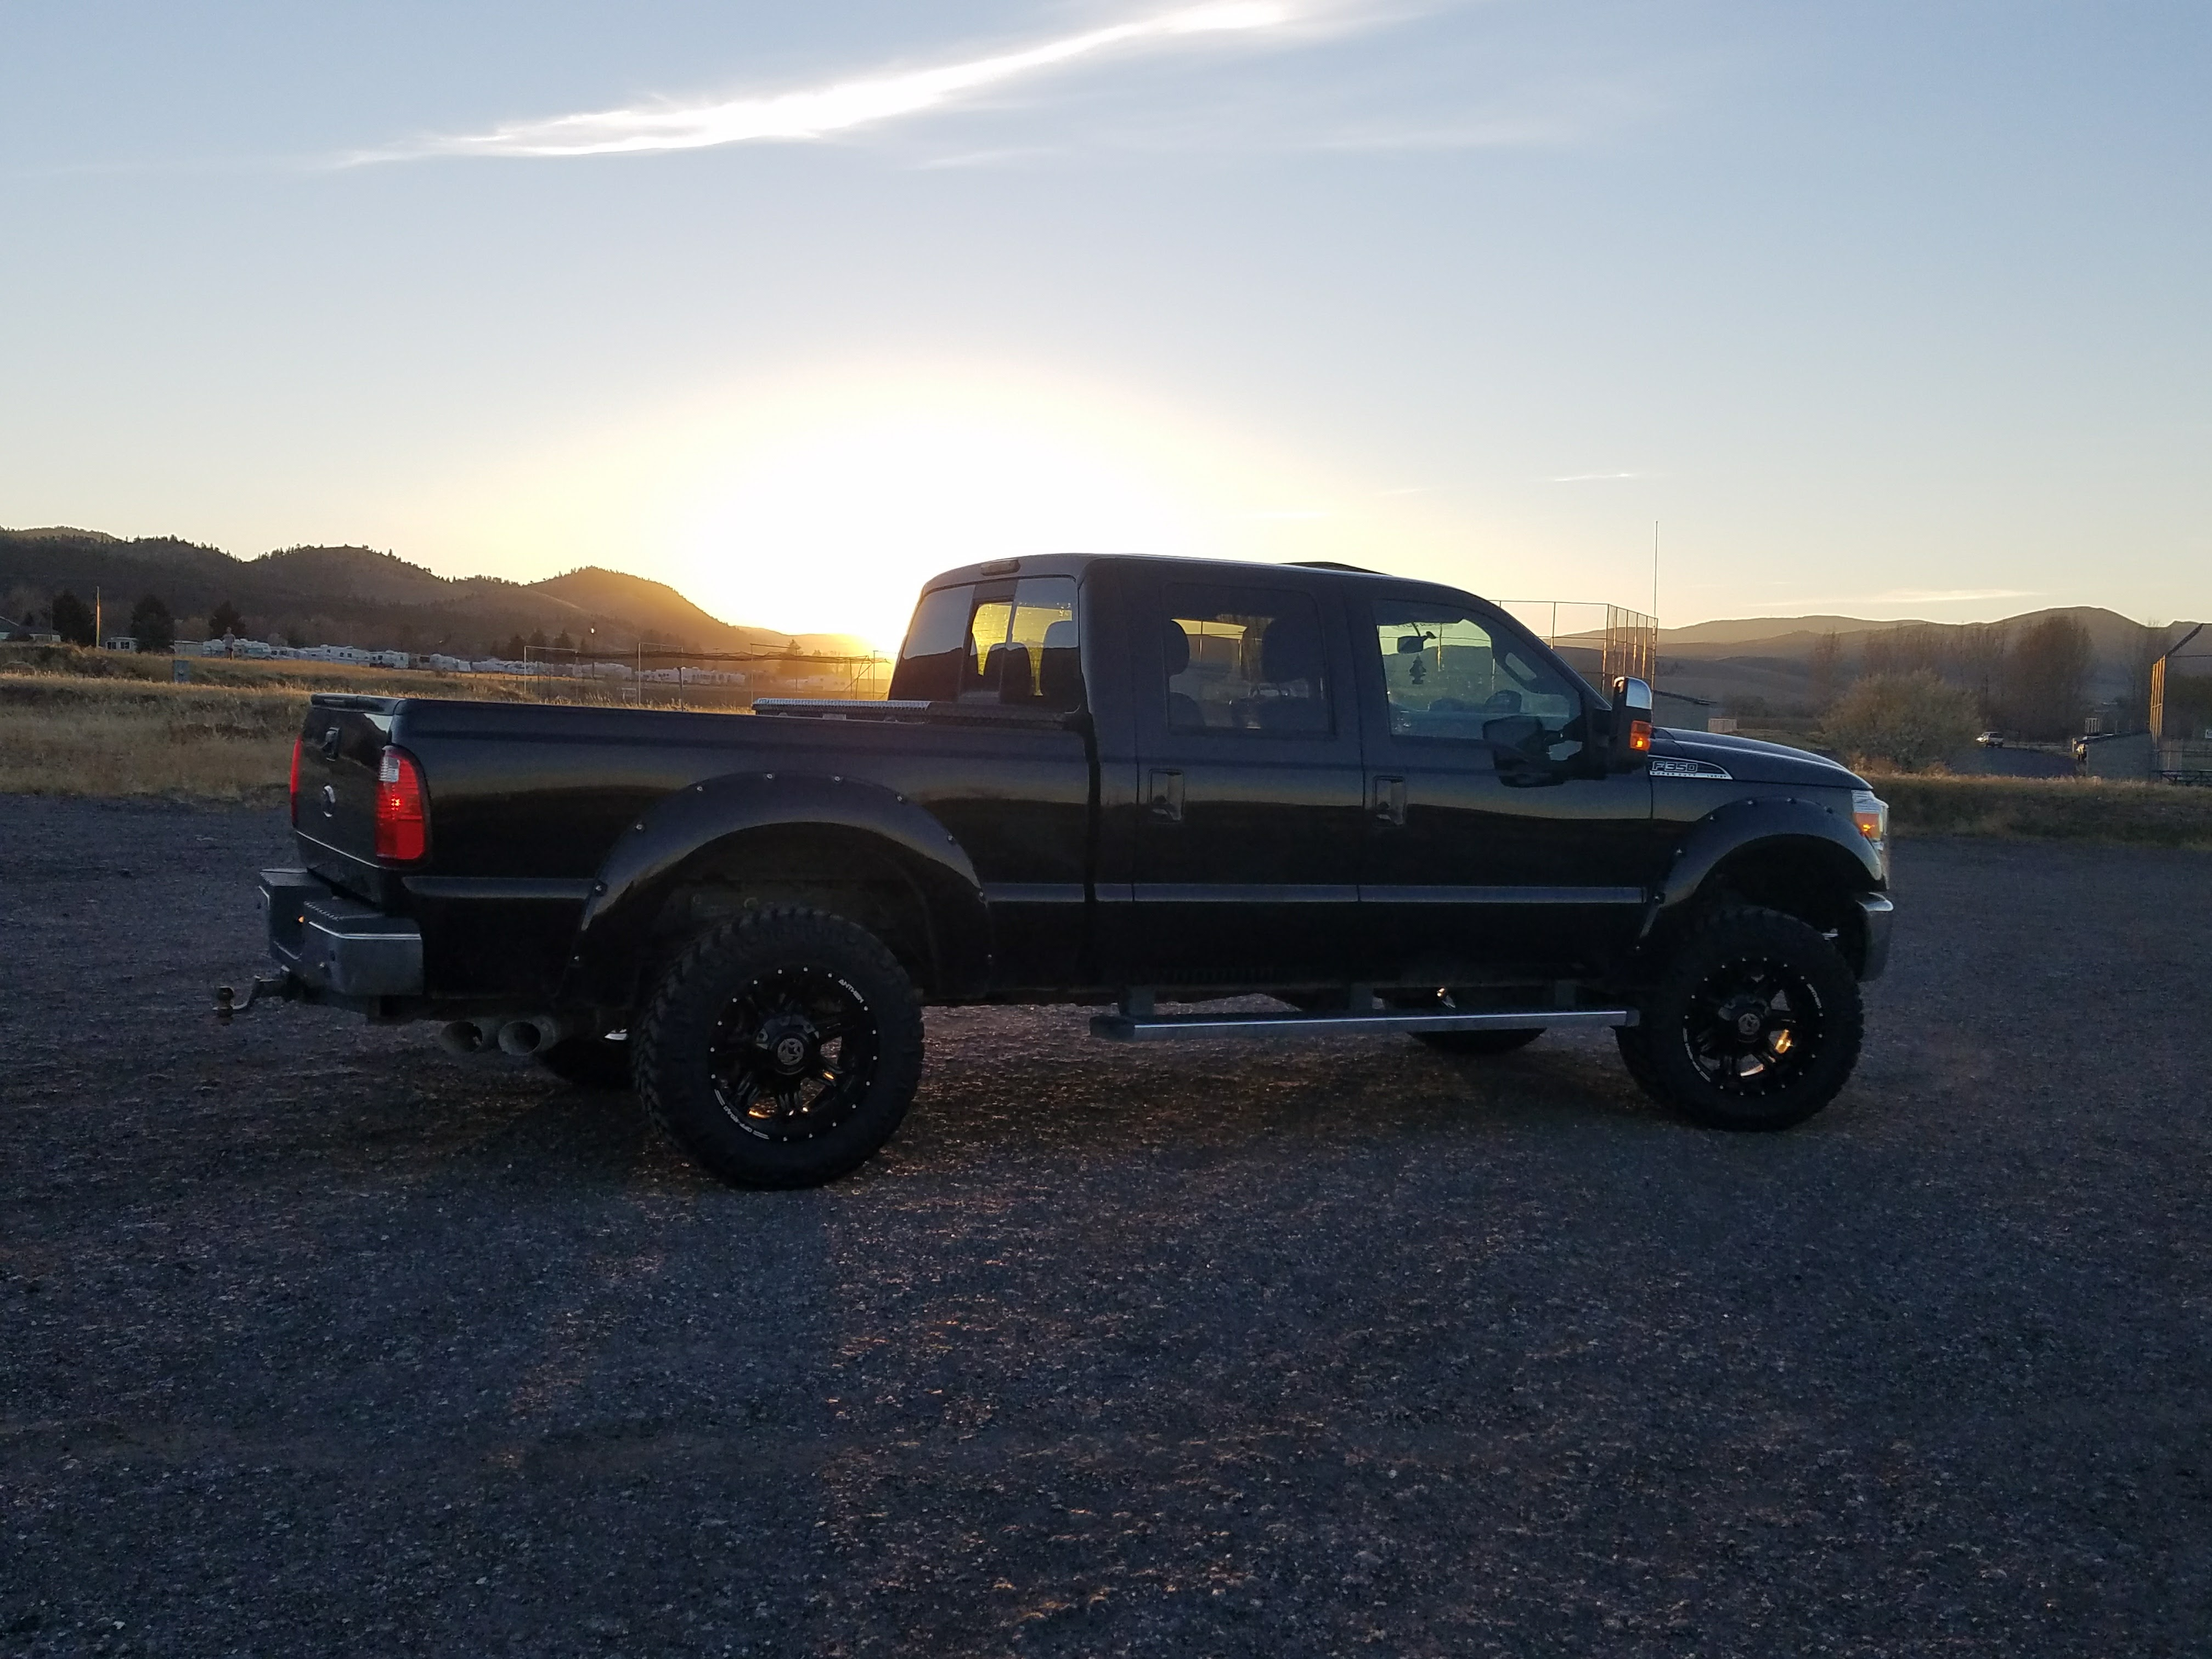 35 s fit on a stock f250 Ford Powerstroke Diesel Forum